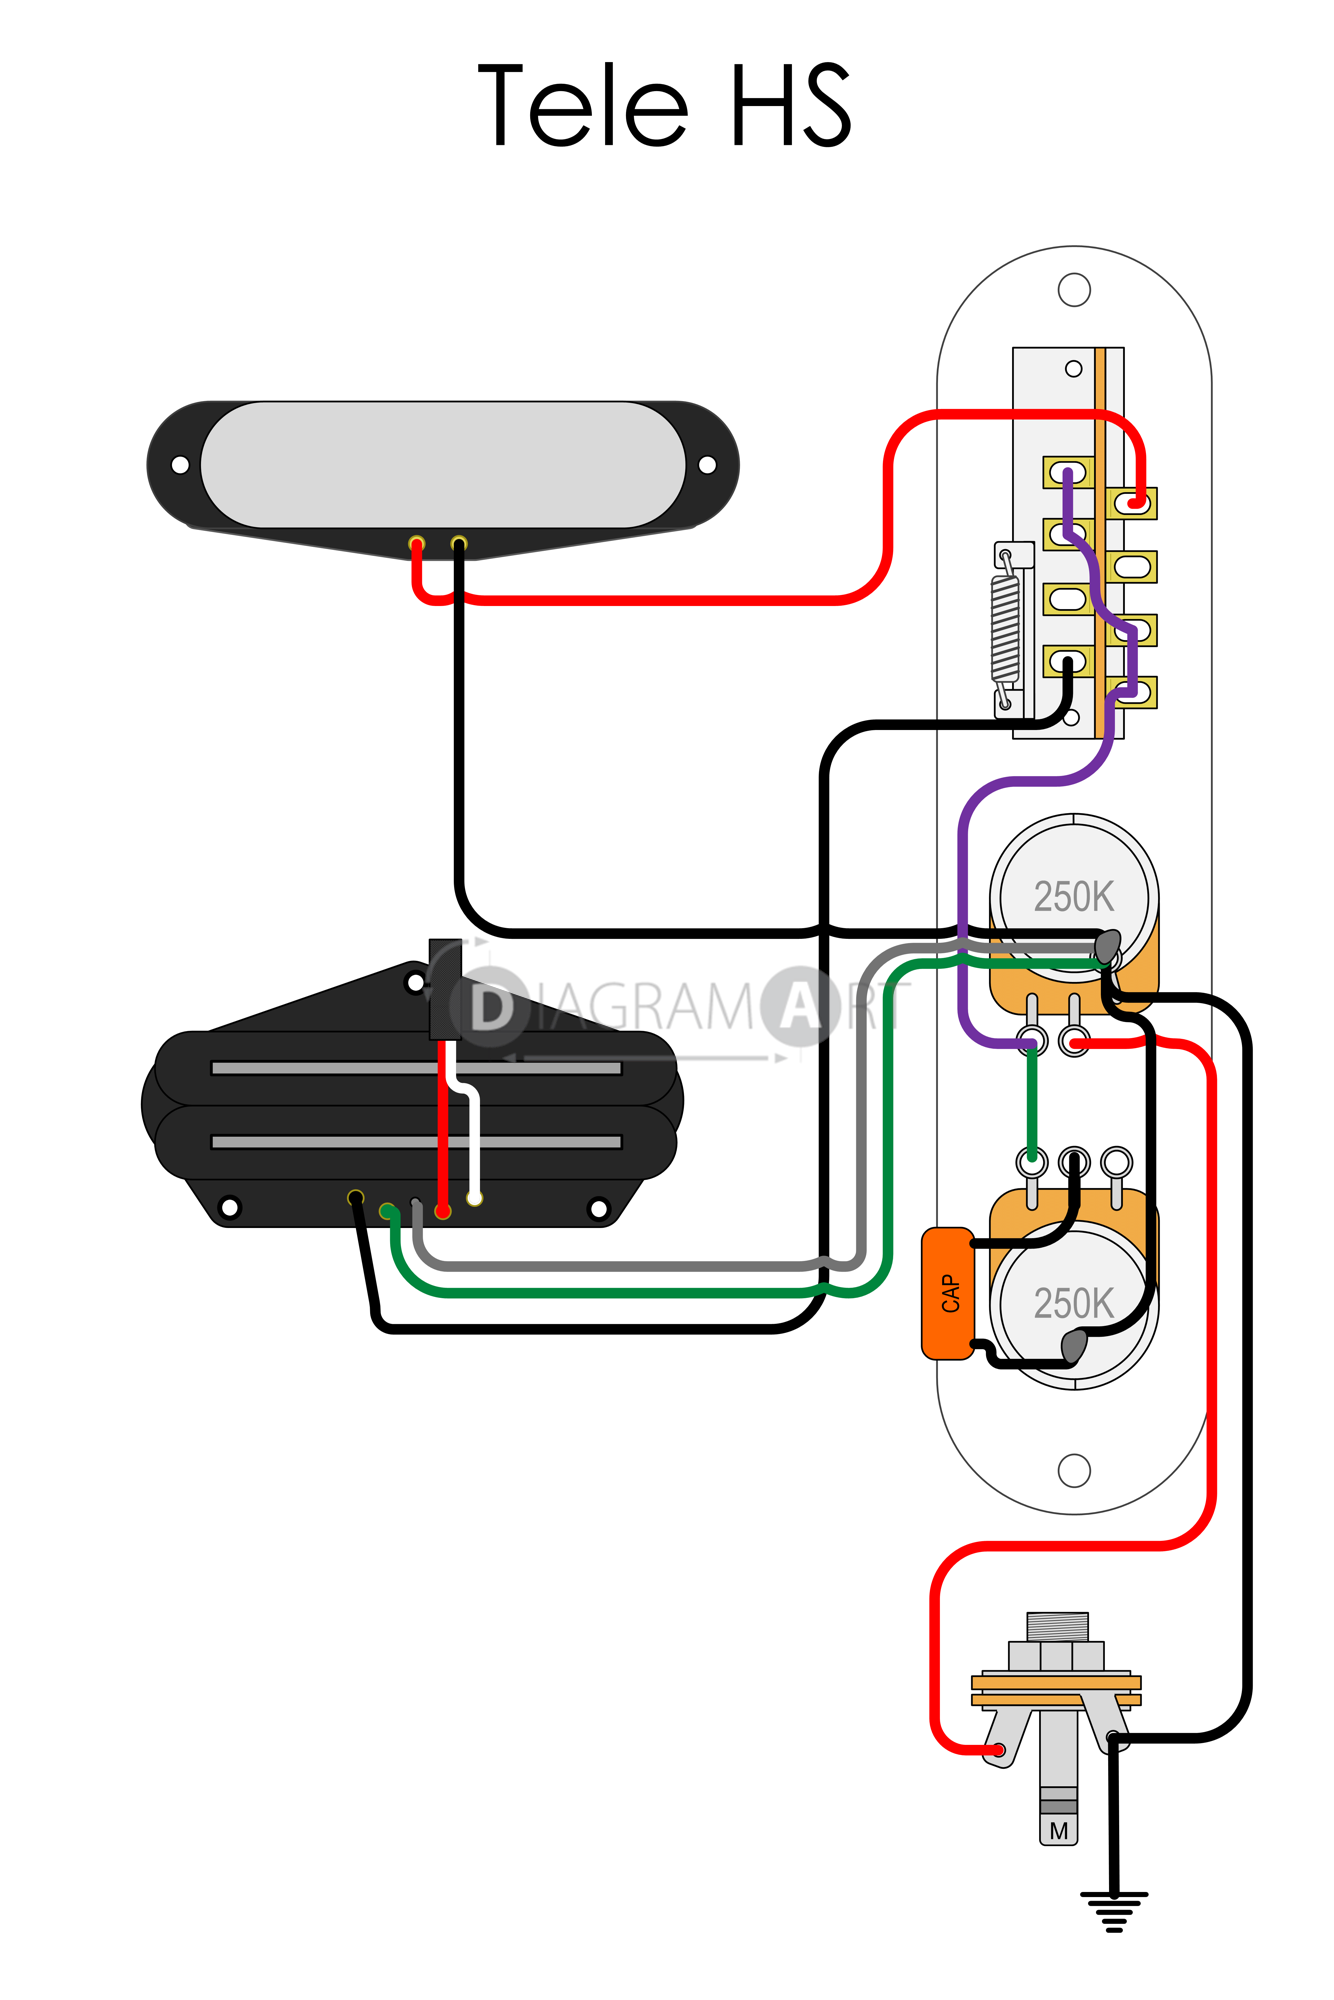 Telecaster Electric Guitar Wiring Diagrams Diagram Will Be Tele Hs Circuit Diagramart Rh Com Switch